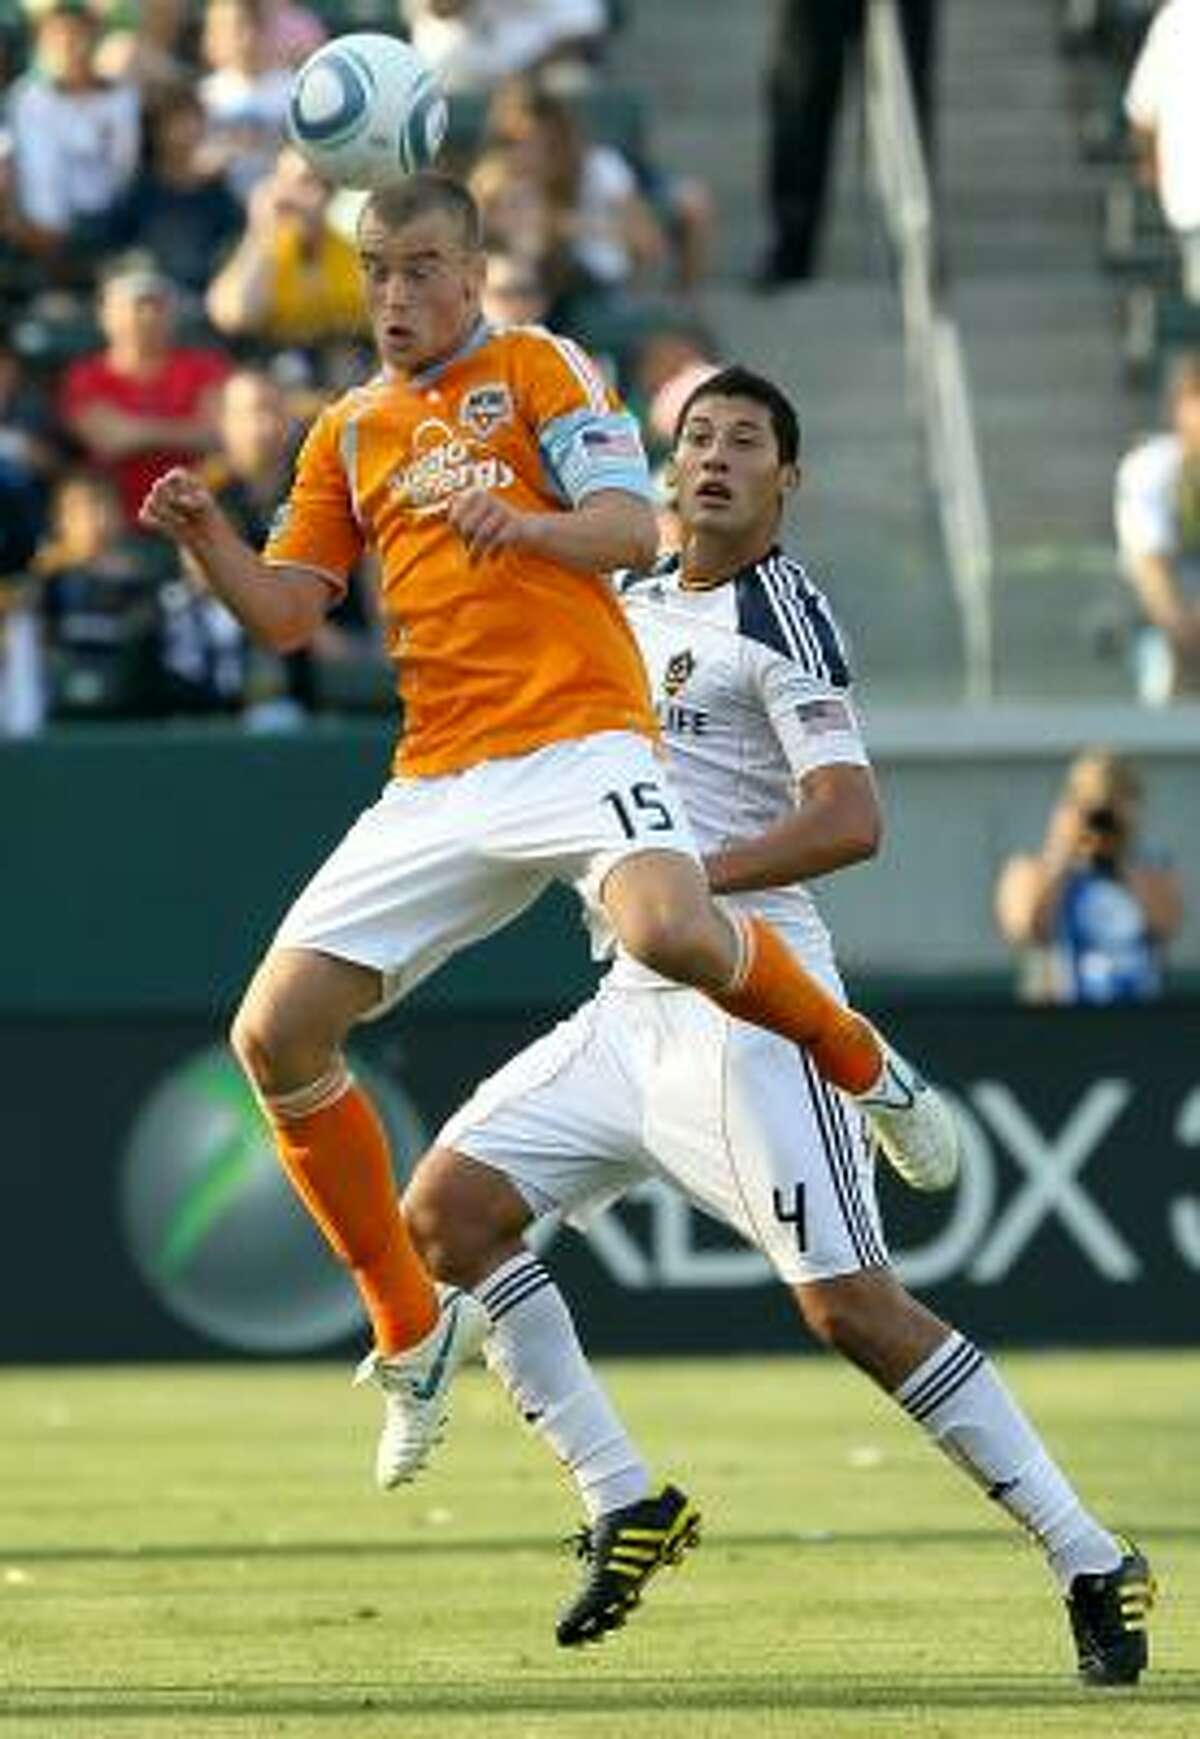 Cam Weaver jumps to head the ball in front of Los Angeles' Omar Gonzalez.